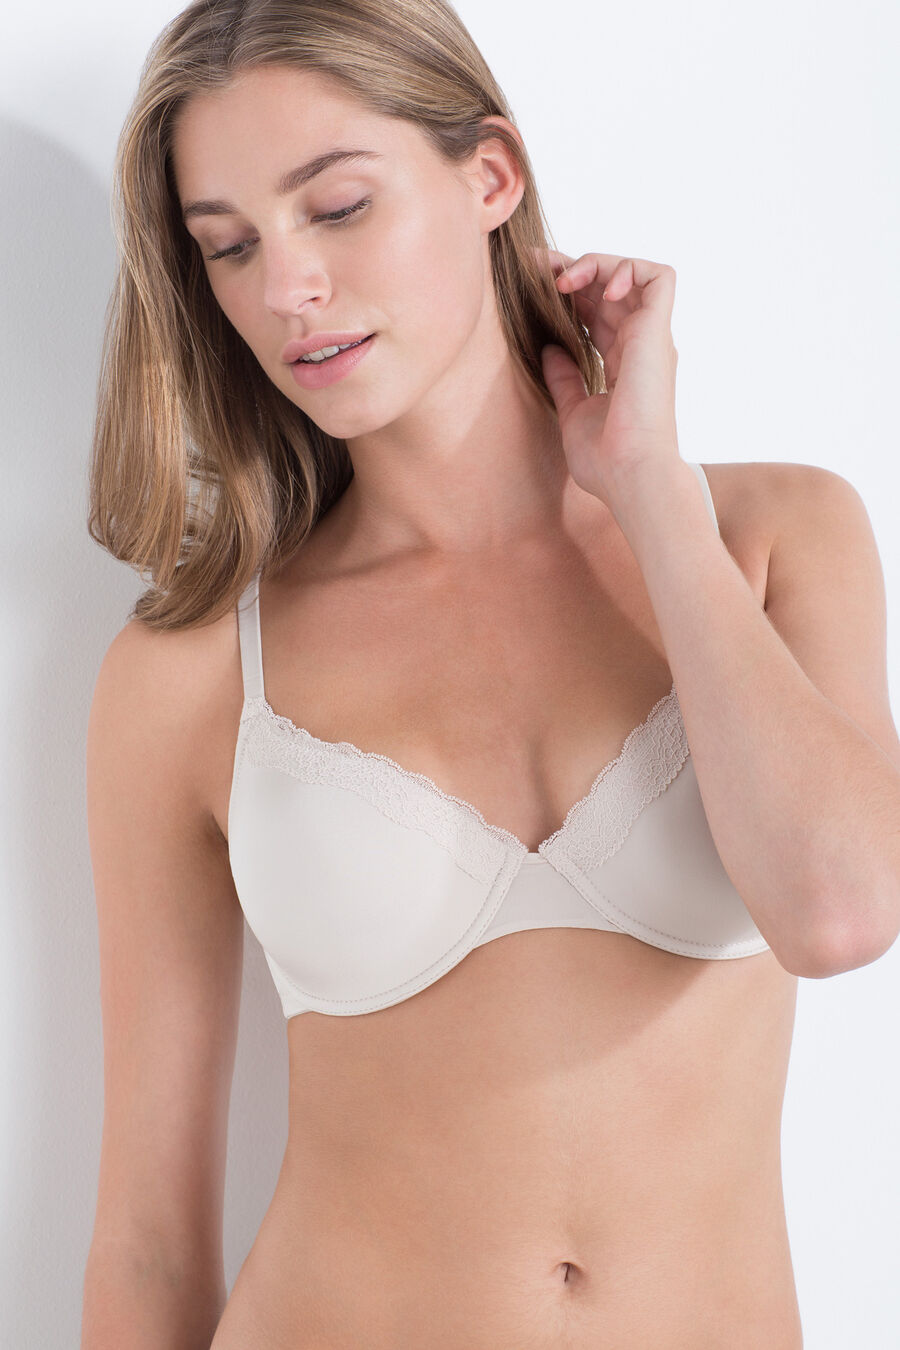 Padded bra with lace detail